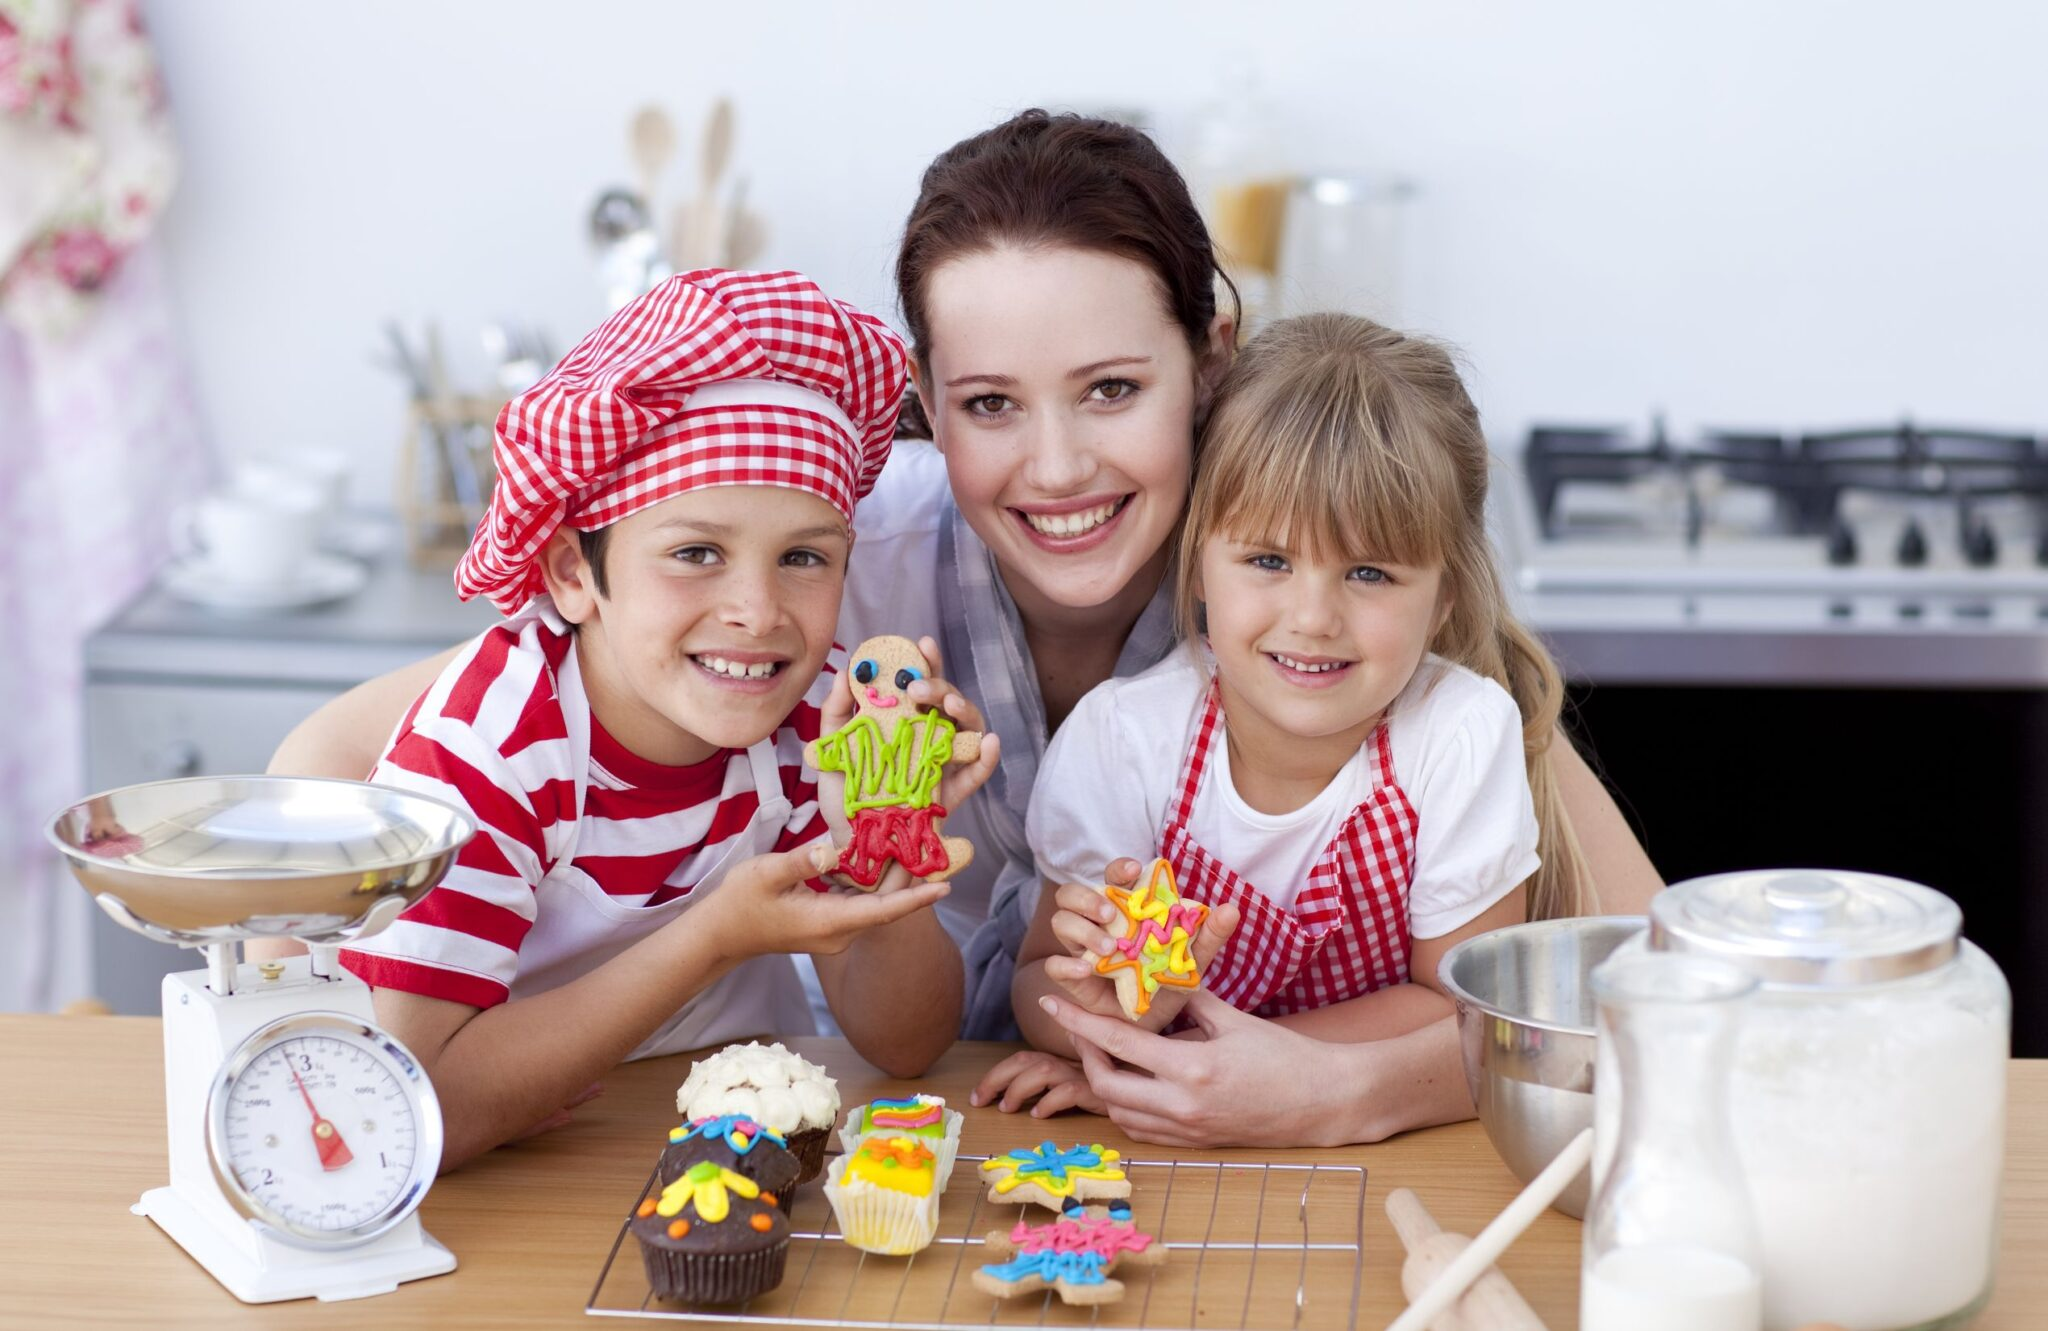 Nanny baking in the kitchen with young children